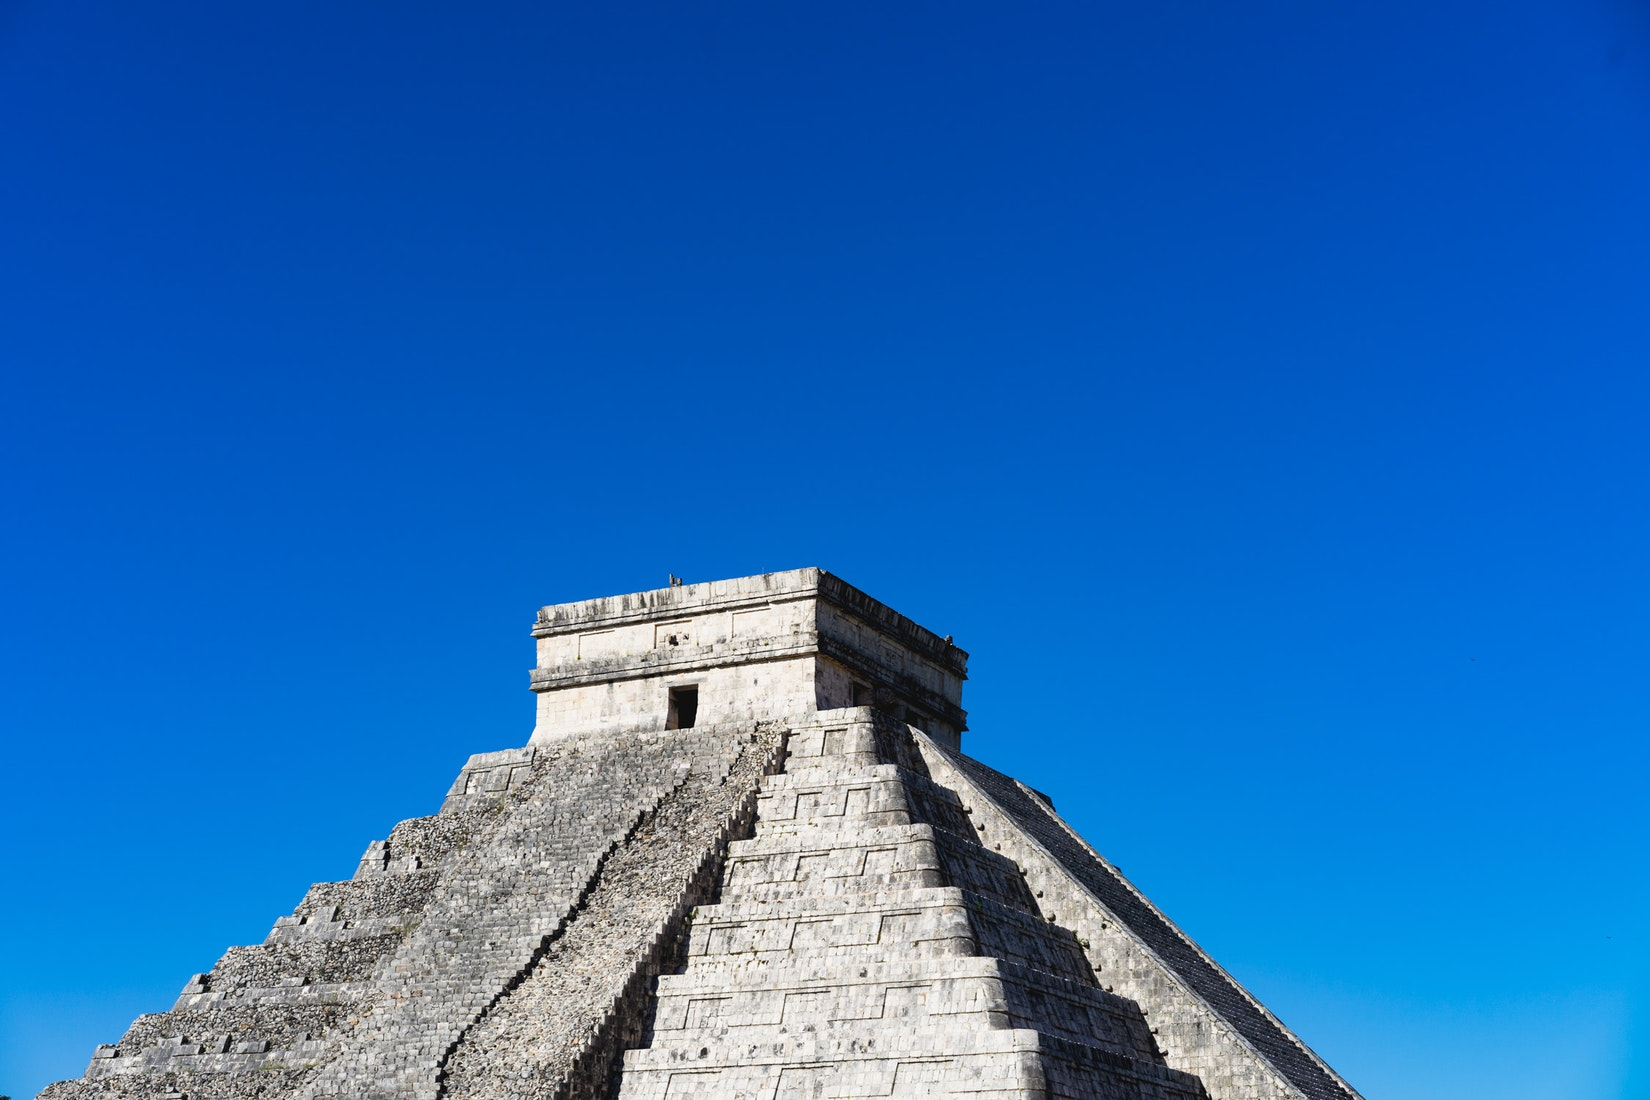 The most well-known of the Mayan pyramids at Chichen Itza National Park in Mexico